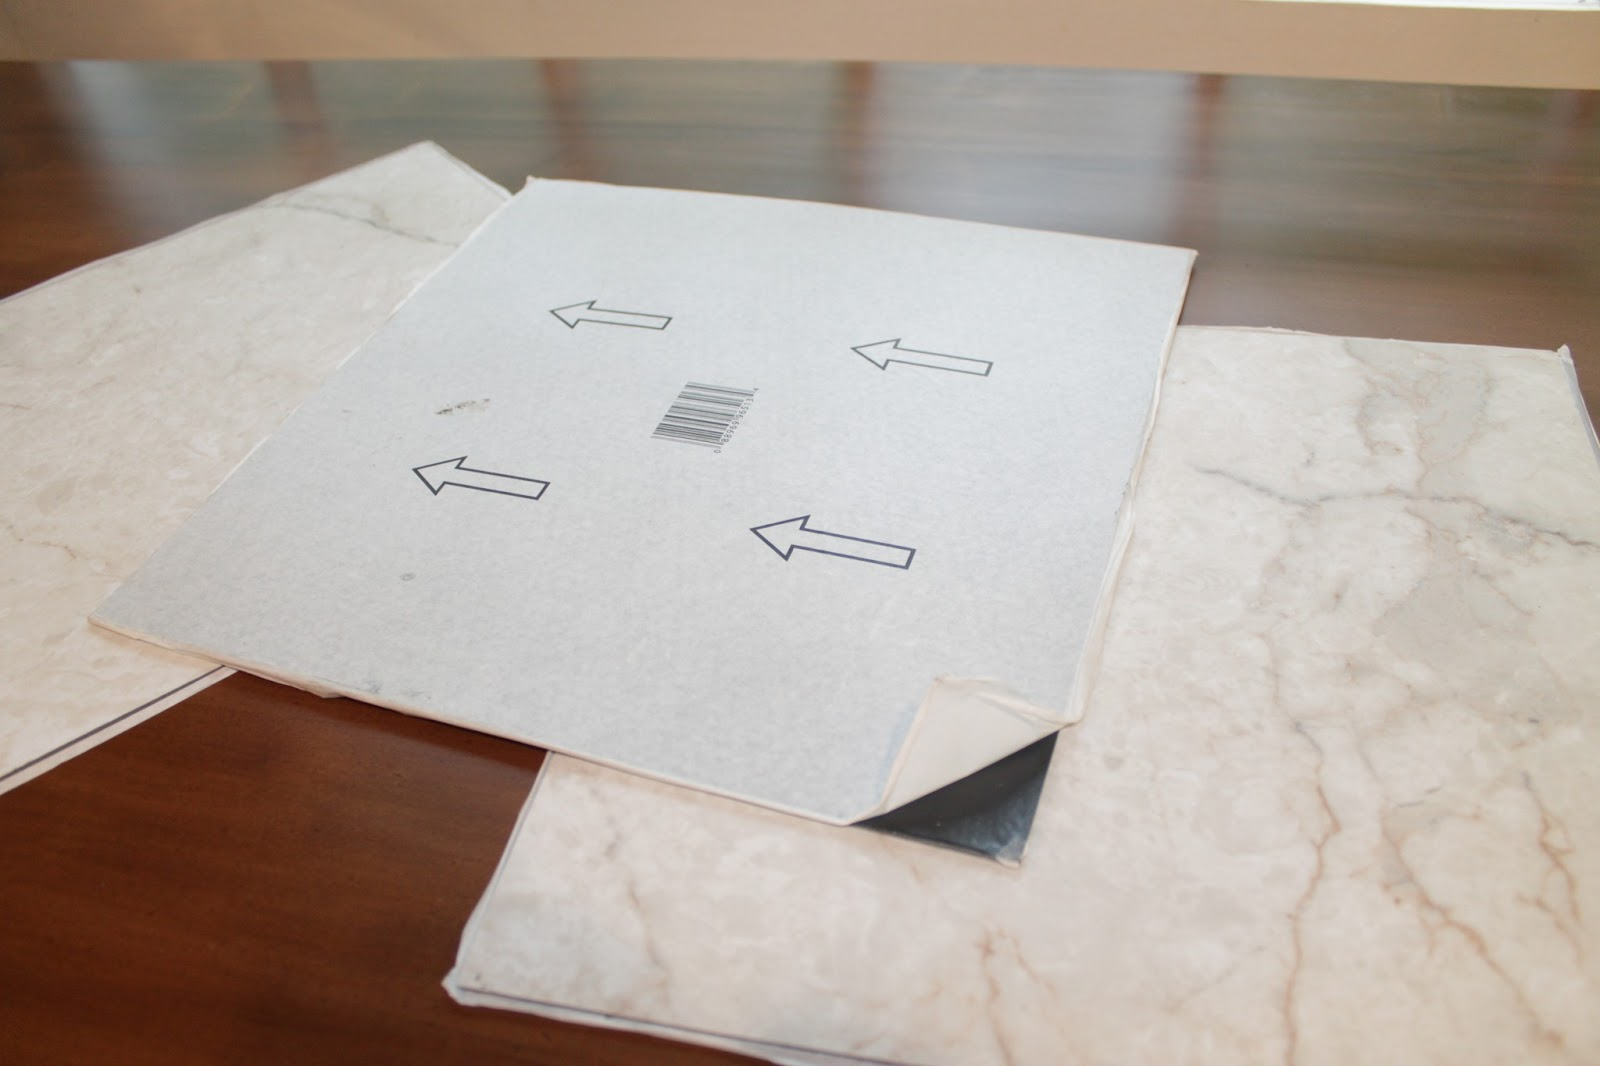 Home Depot Peel and Stick Tile